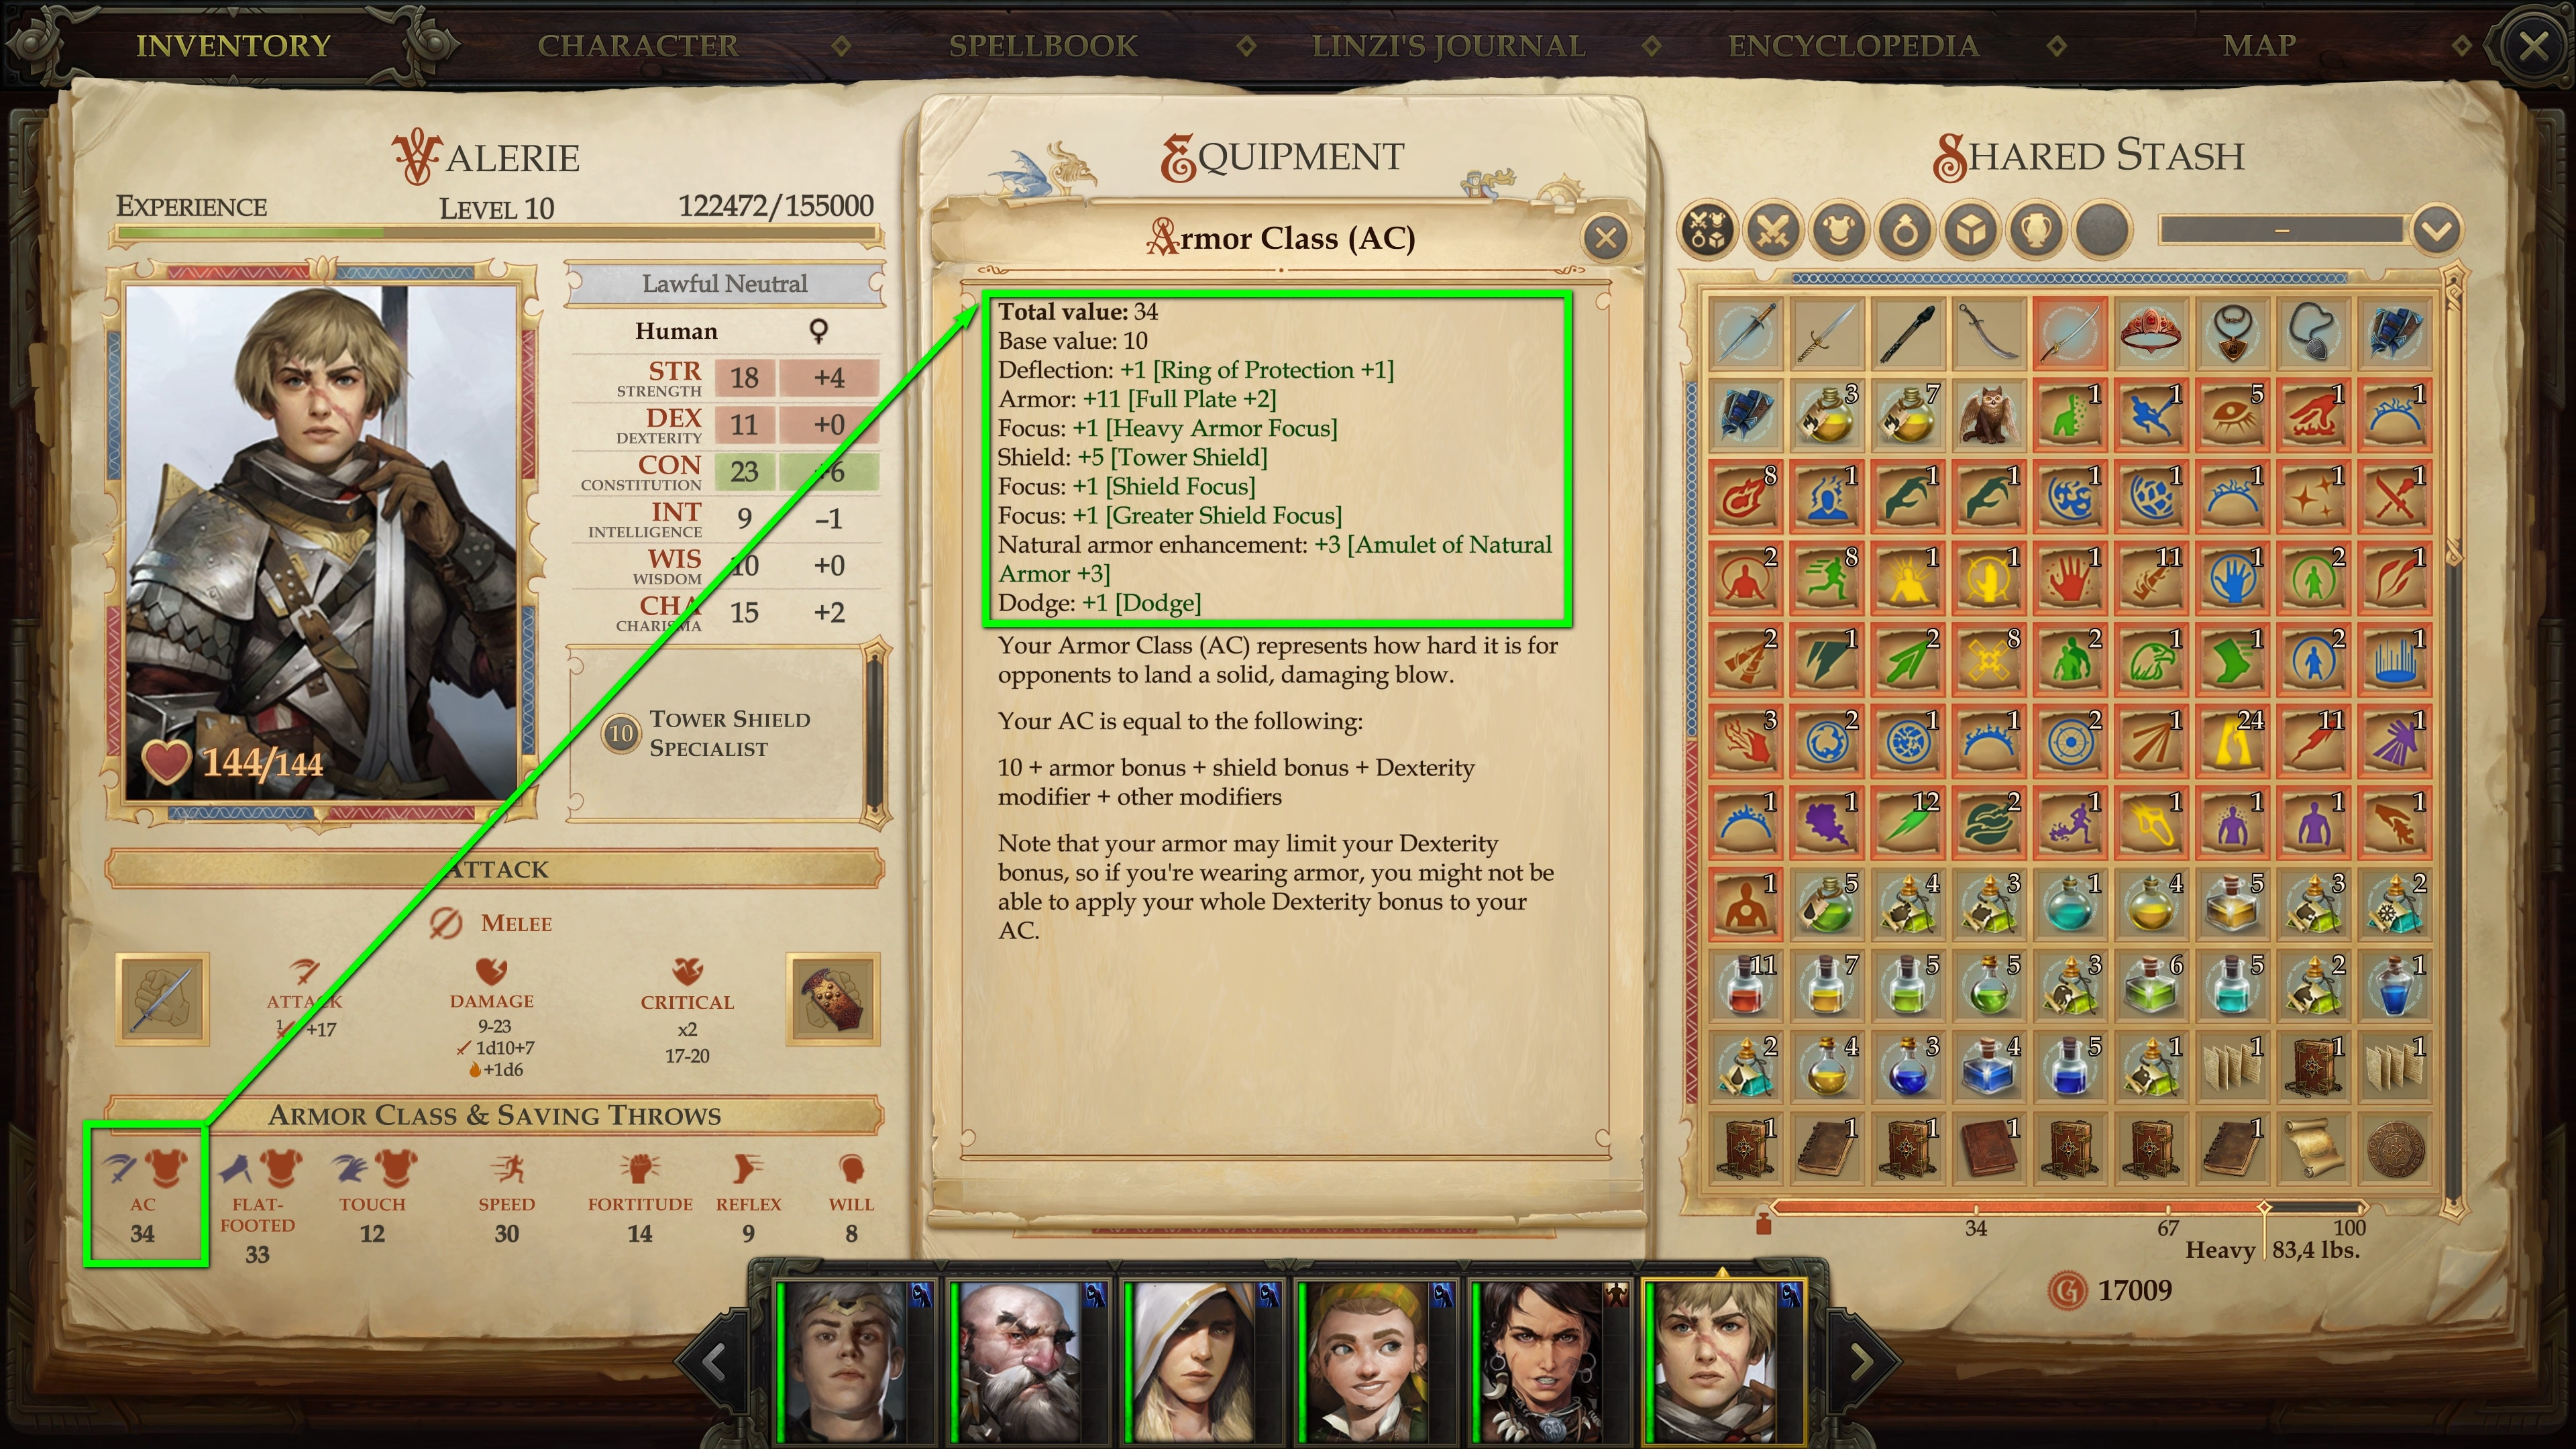 The Armor Class explained at a glance. © Owlcat Games